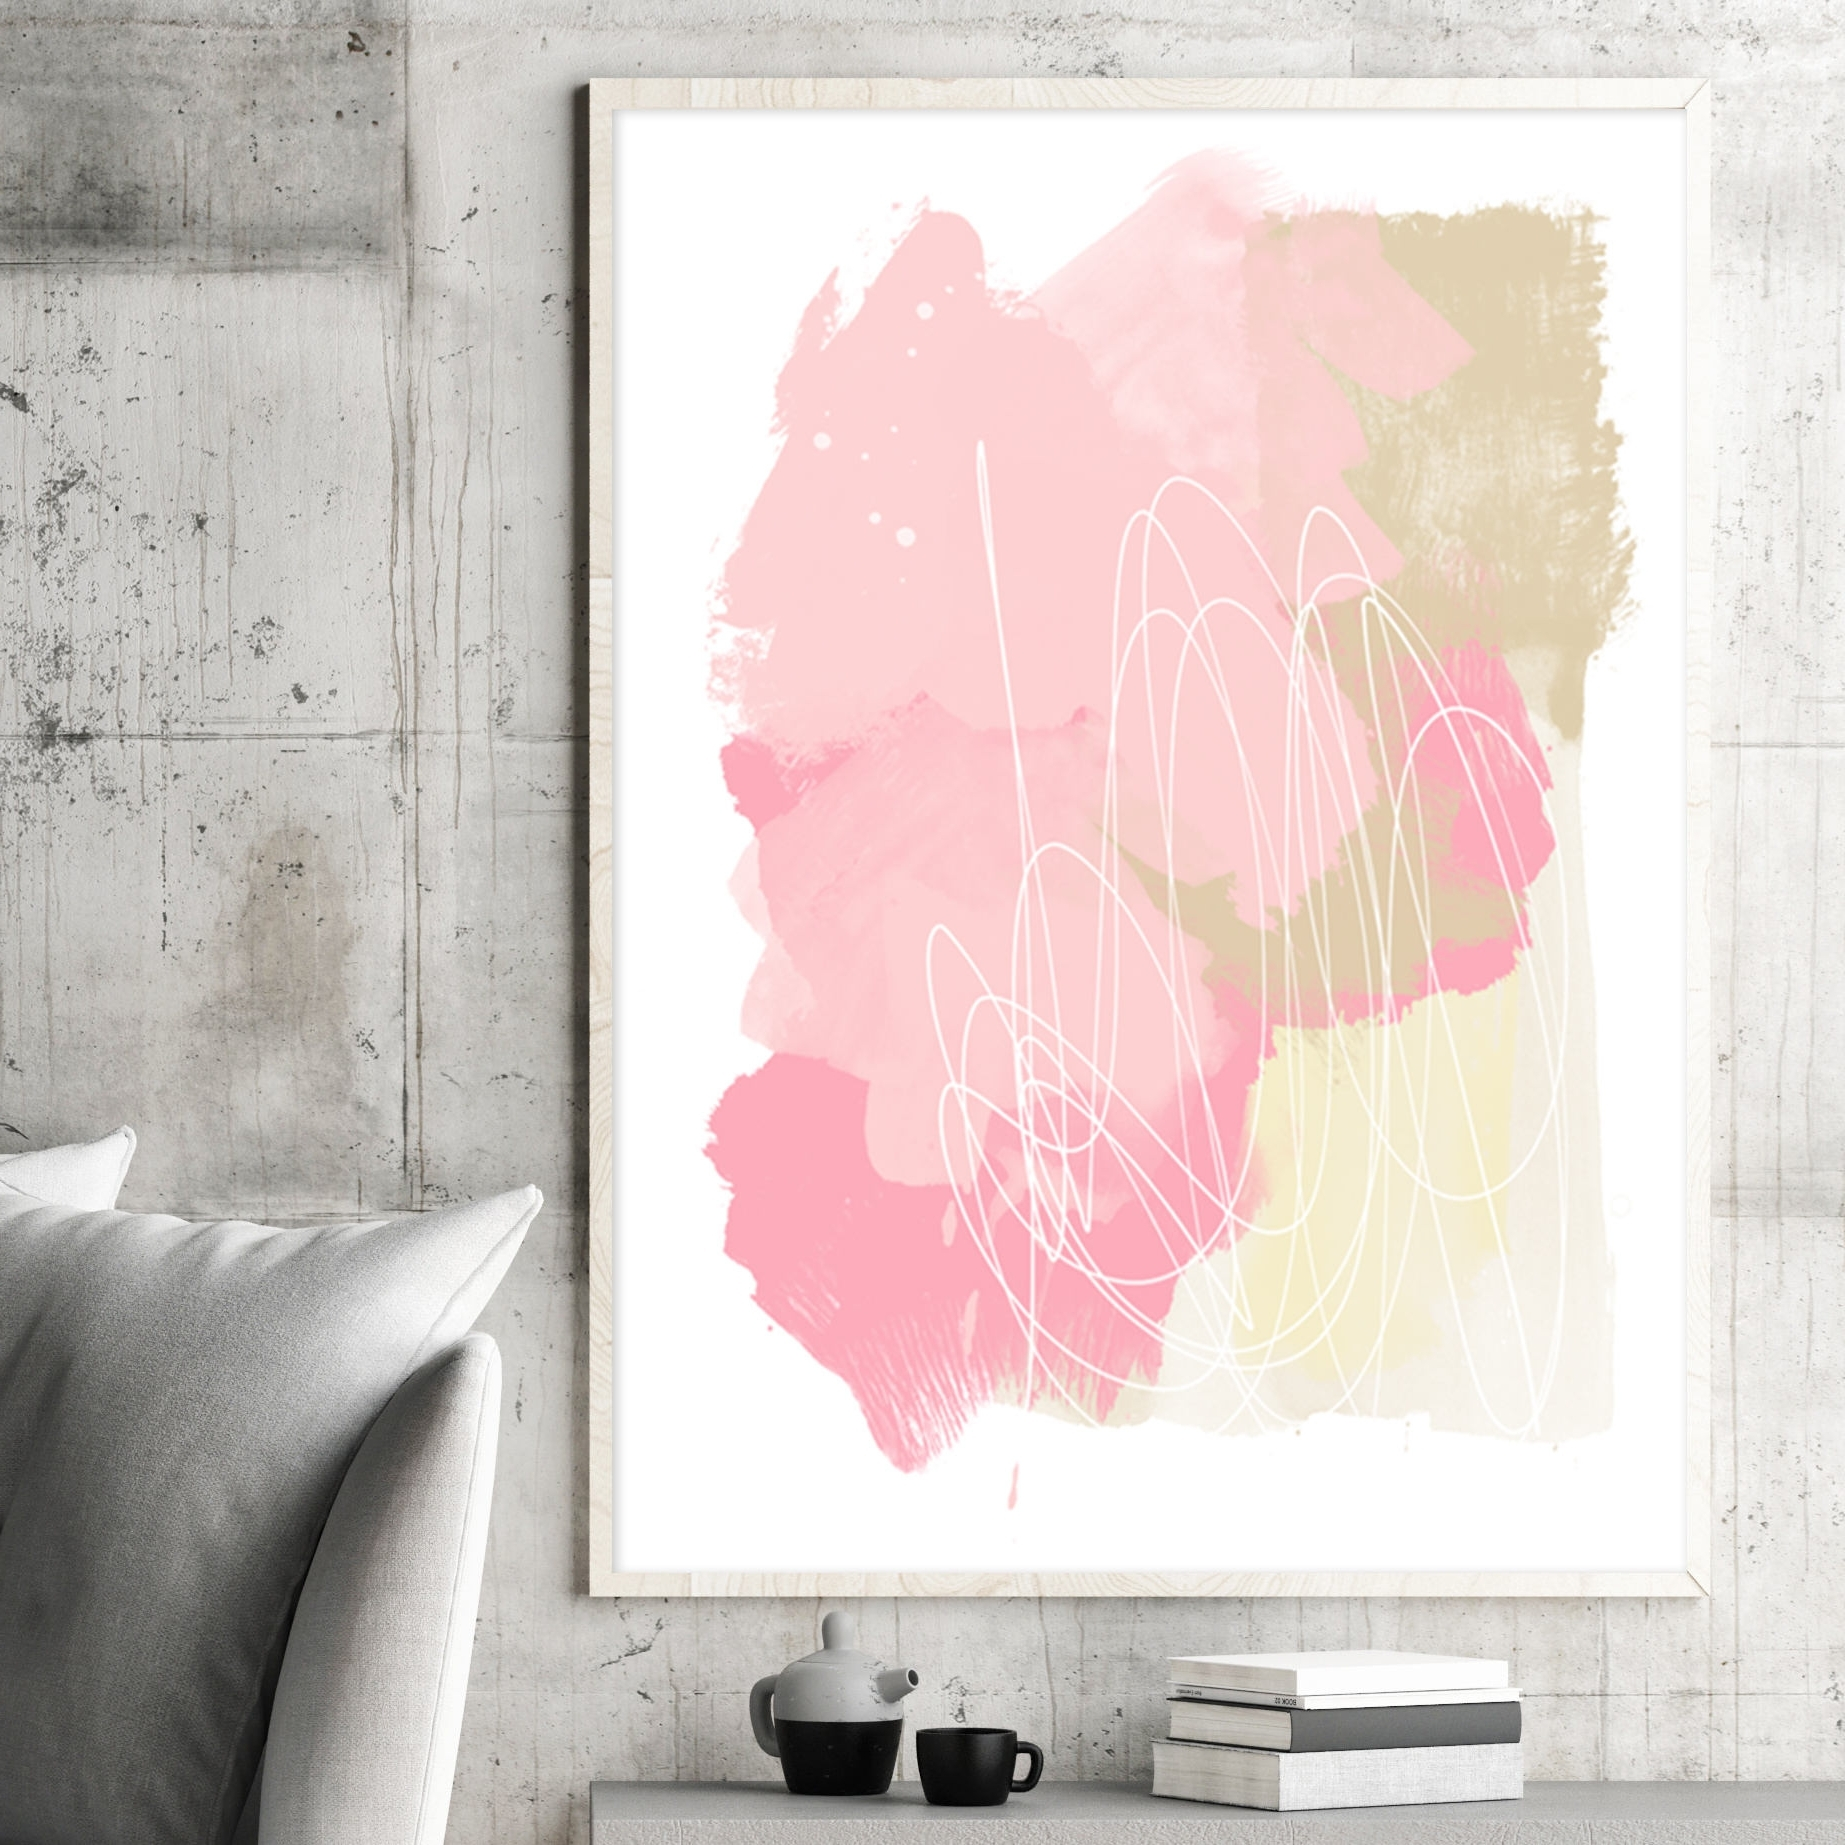 Well Known Pale Pink Abstract Art, Pink And Beige Painting, Printable Modern Throughout Pink Abstract Wall Art (View 5 of 15)